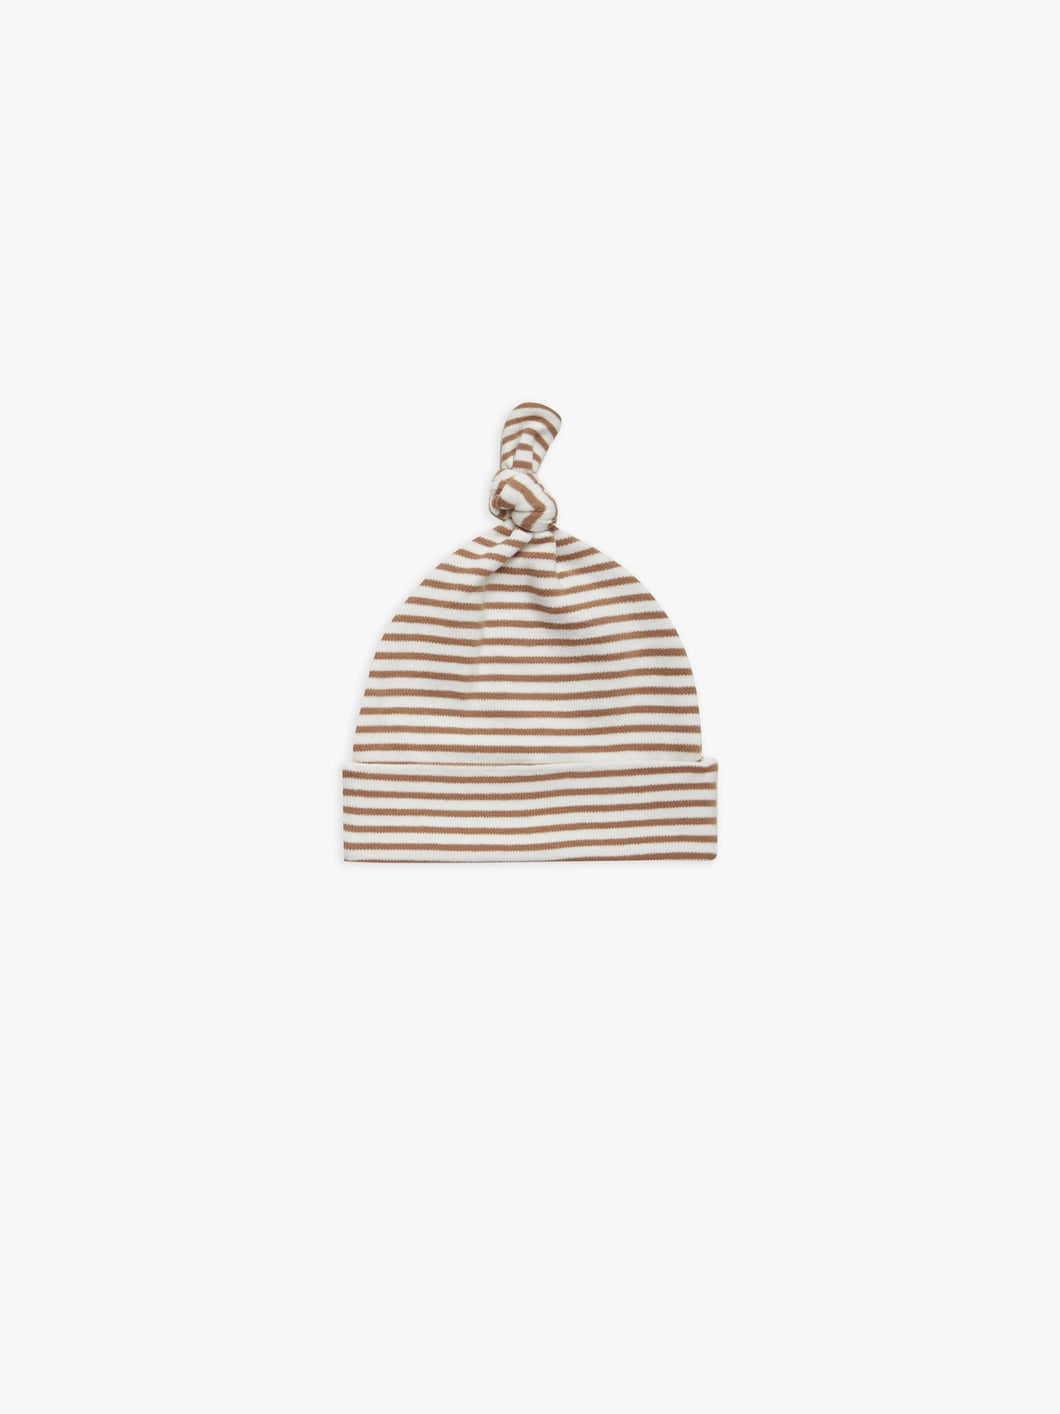 Quincy Mae Baby Hat - Rust Stripe